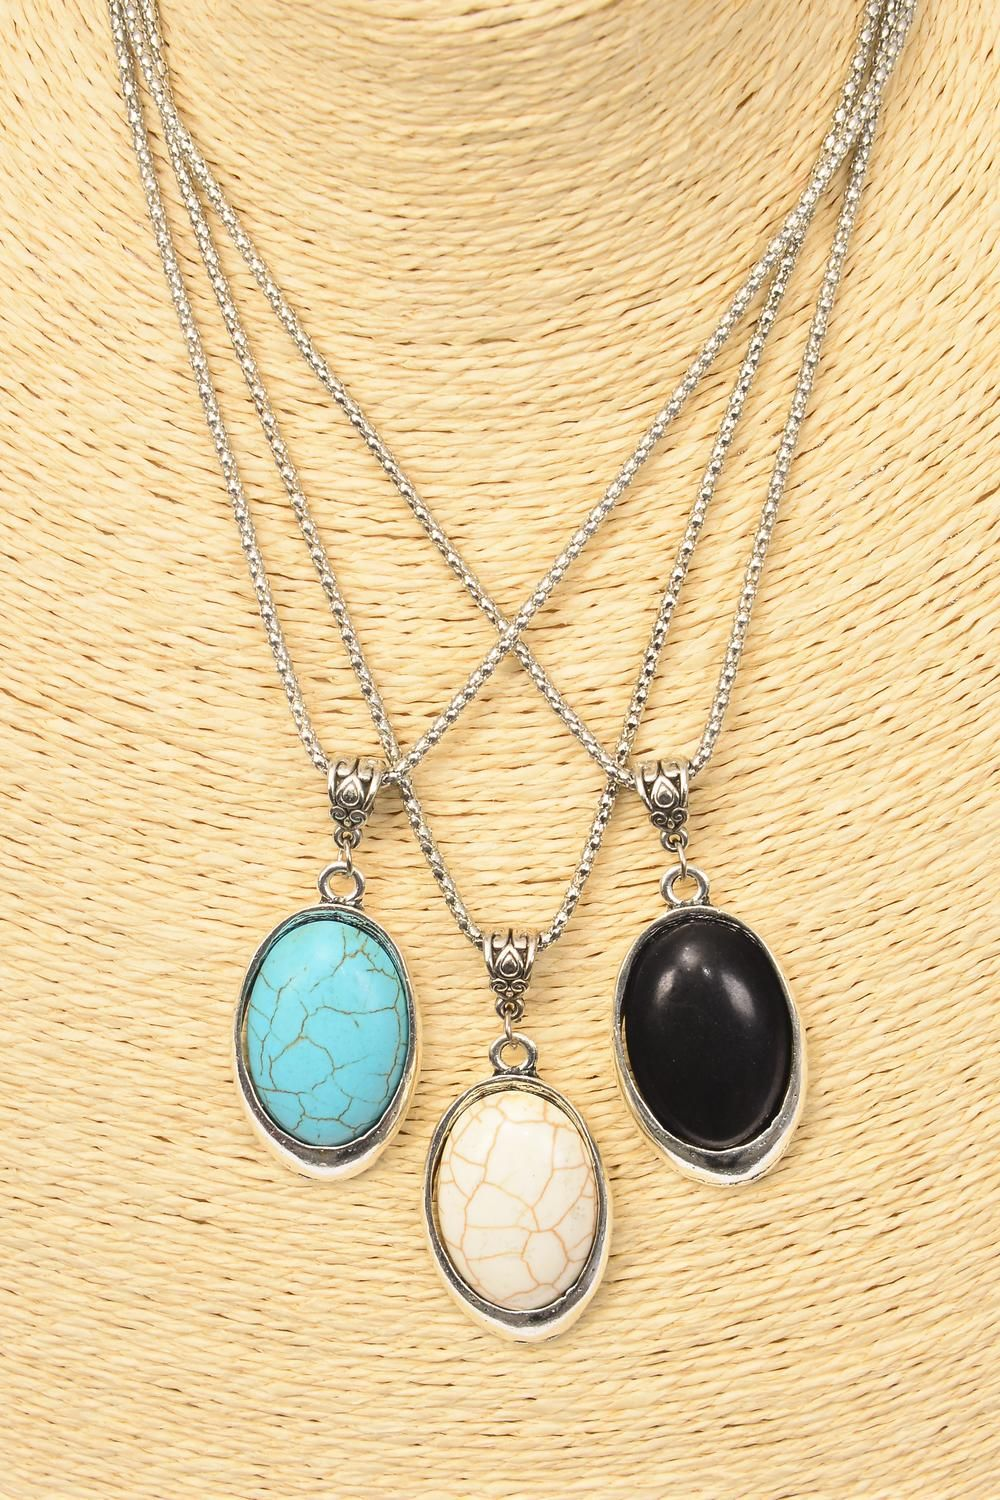 "Necklace Silver Chain Metal Oval Antique Round Semiprecious Stone/DZ match 02970 Pendant-1.75"" x 1.25"" Wide,Chain-18"" Extension Chain,4 Ivory,4 Black,4 Turquoise Asst,Hang Tag & OPP Bag & UPC Code"